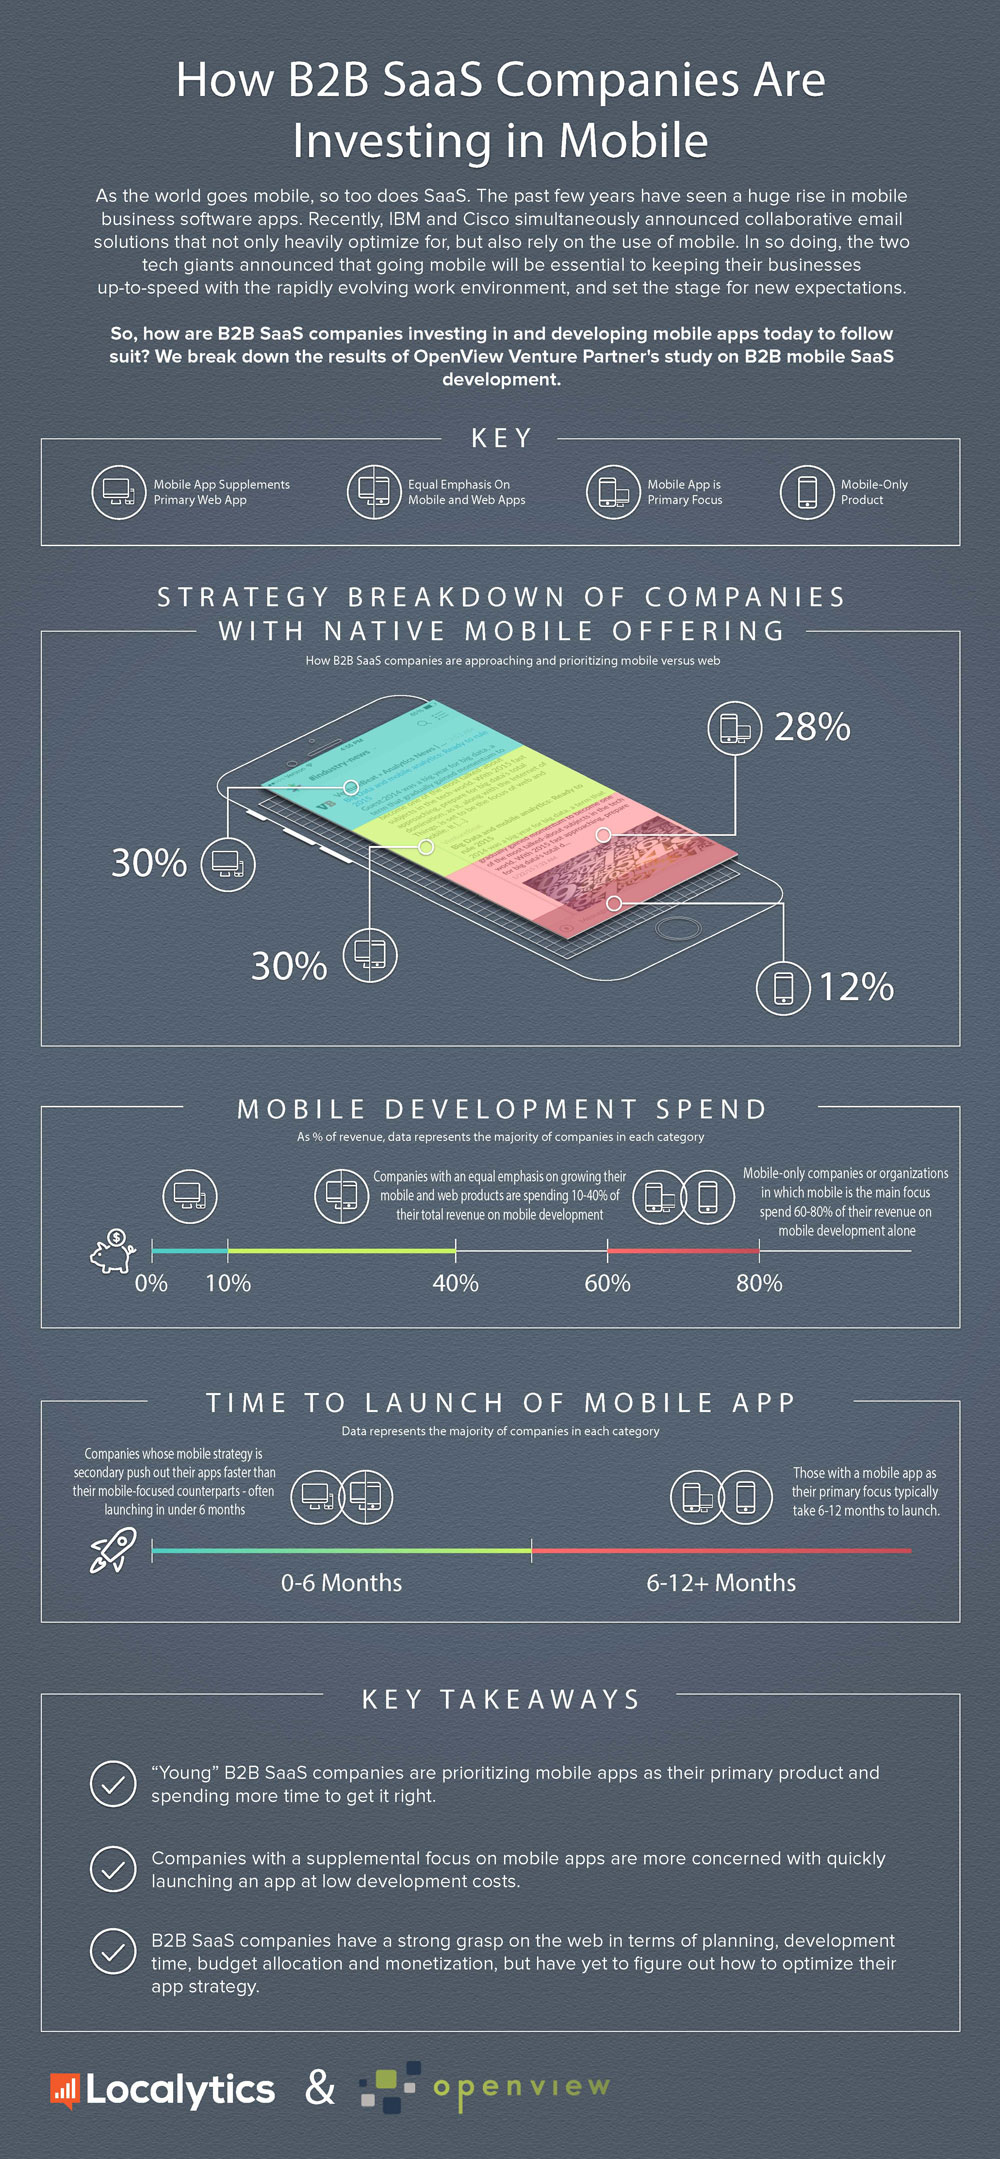 How_B2B_SaaS_Companies_Are_Investing_in_Mobile